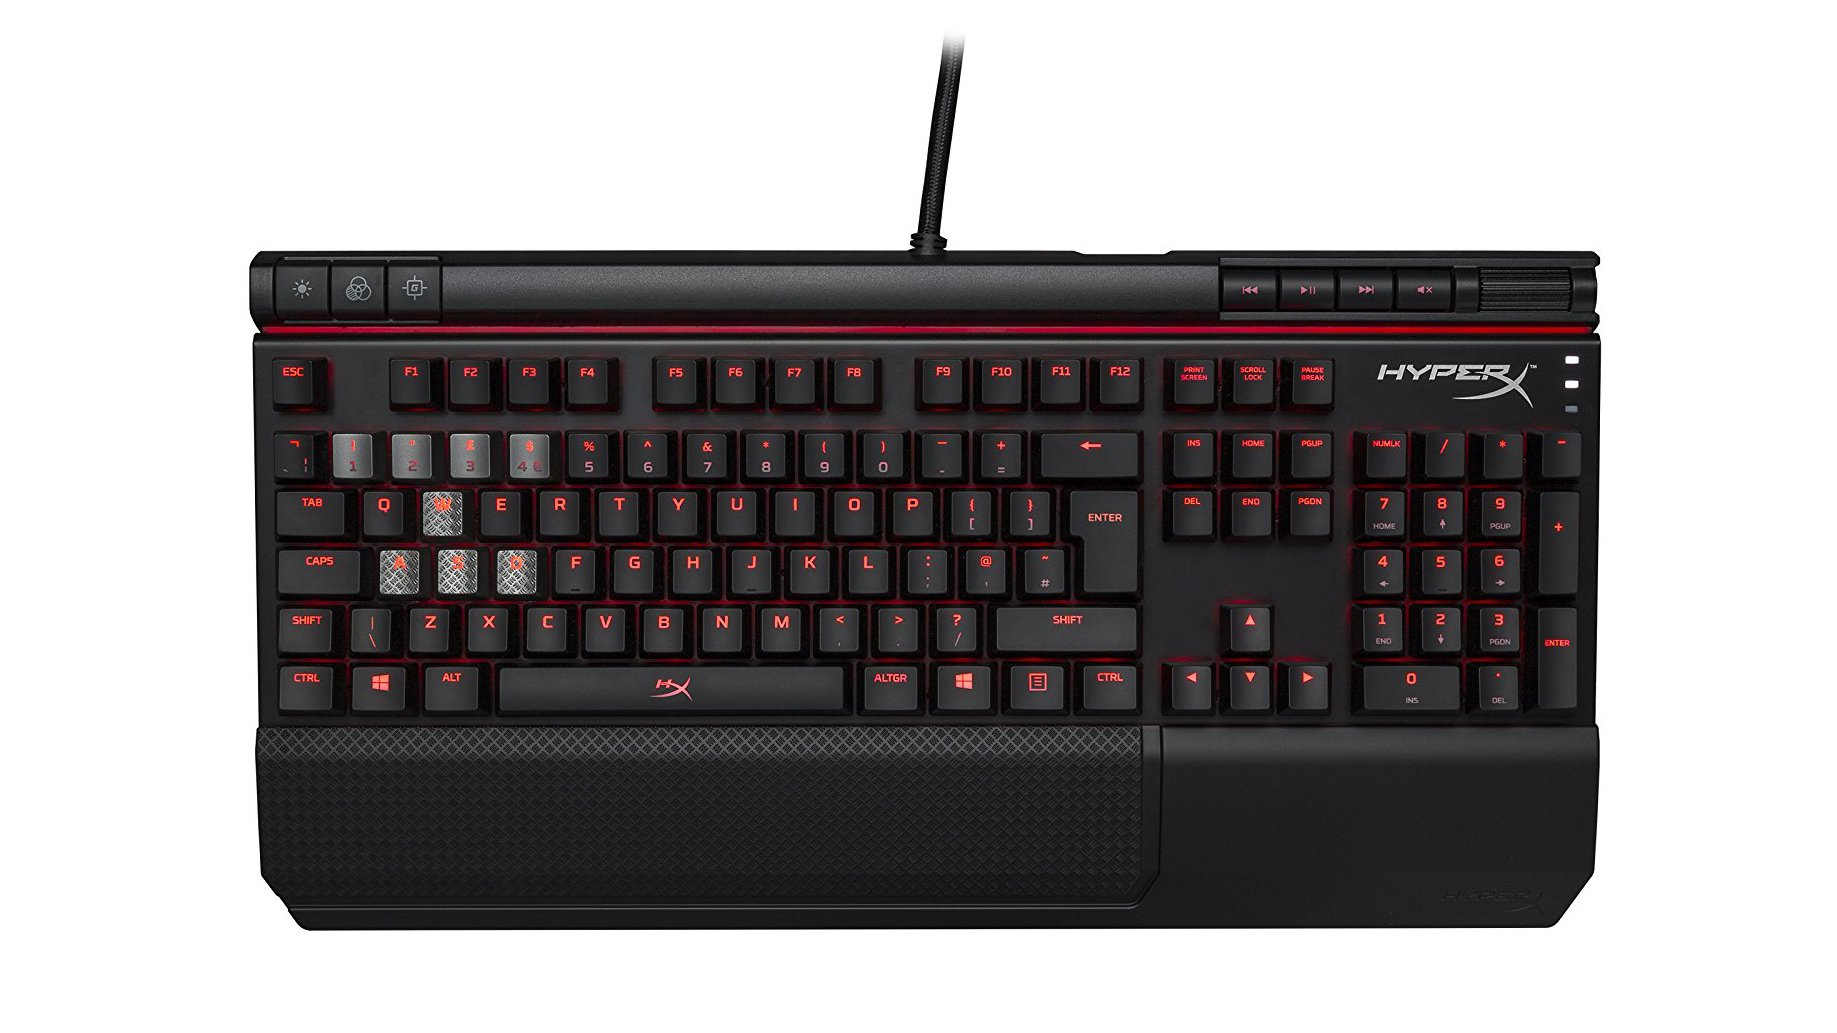 9edef24acc9 HyperX's Alloy Elite mechanical gaming keyboard is as rugged as keyboards  come. With a solid-steel frame as its top plate, the keyboard can survive a  lot of ...